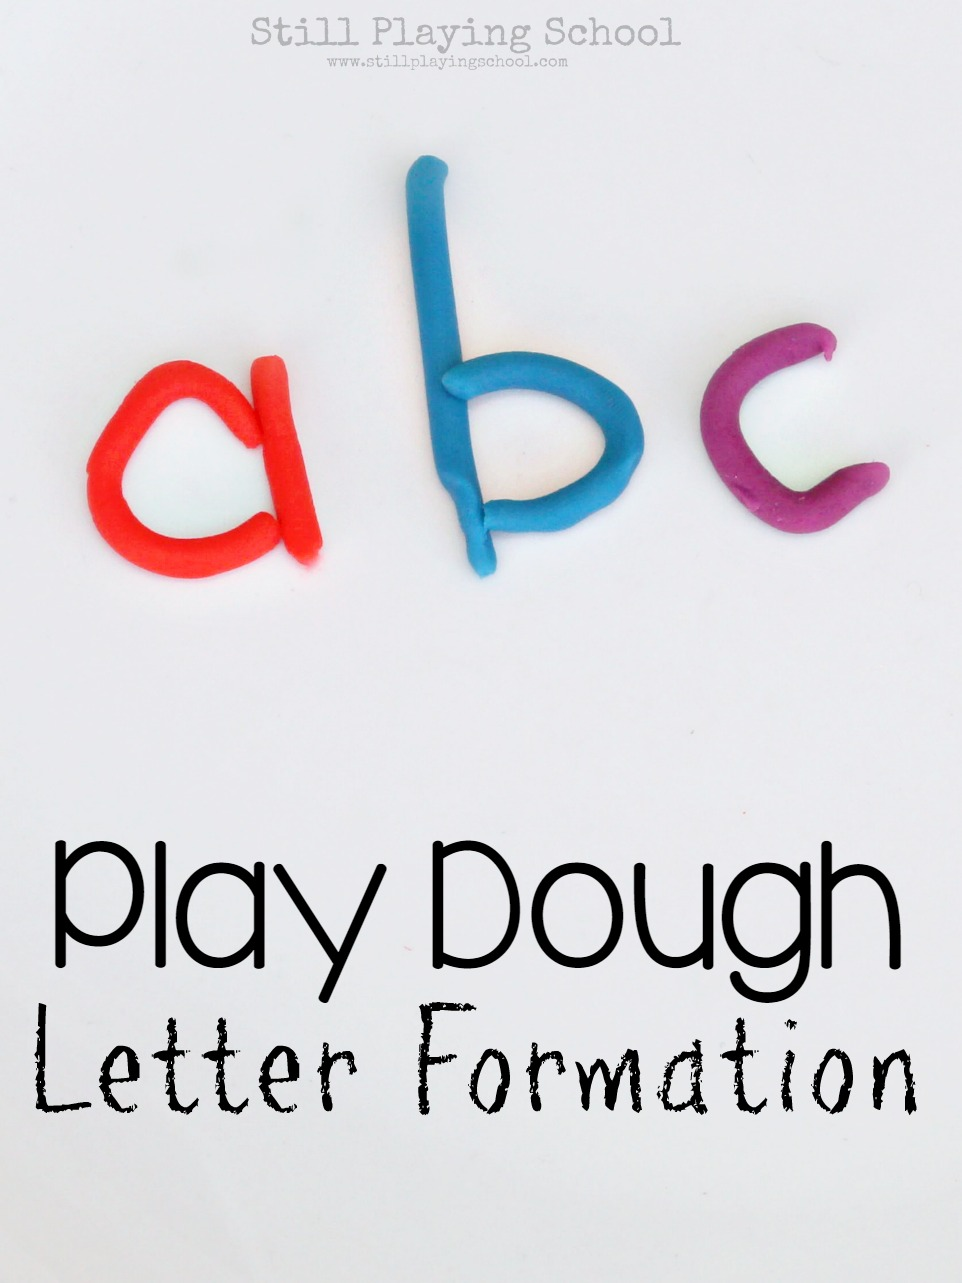 Letter formation with play dough still playing school letter formation with play dough mitanshu Image collections